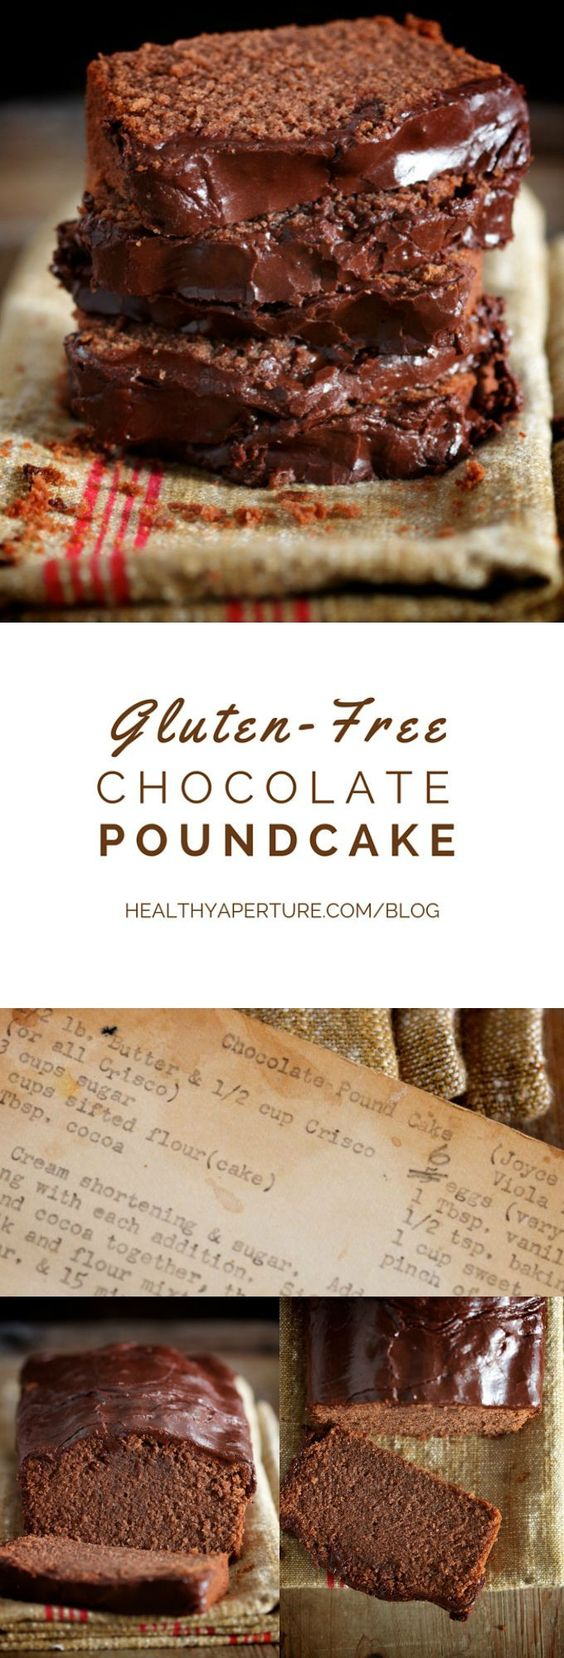 Pound cake gets a makeover with this Gluten-Free Chocolate Pound Cake recipe.